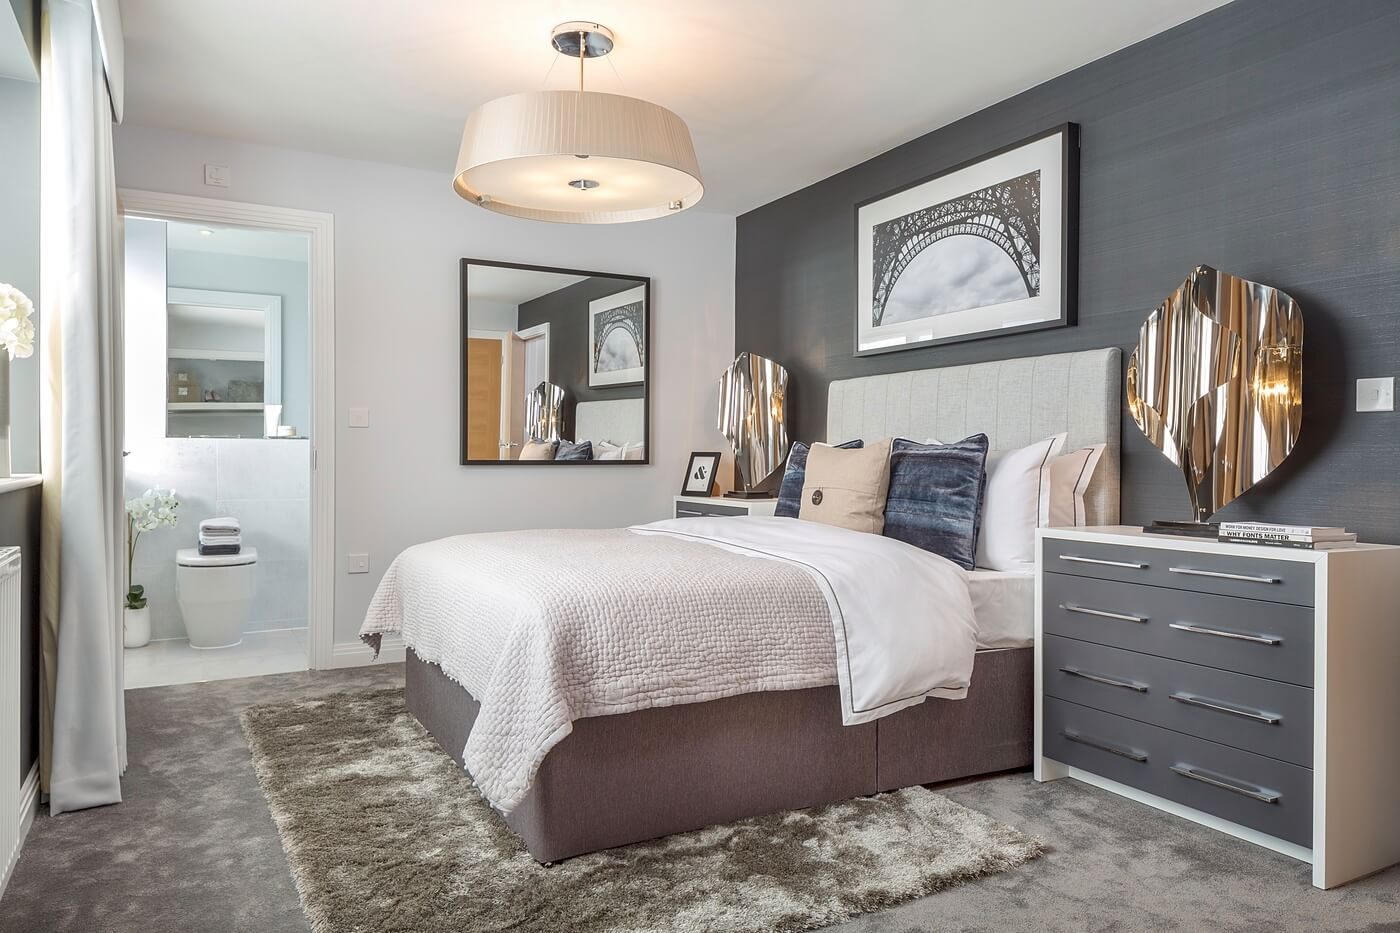 Kingfisher bedroom 2 (CALA Homes)